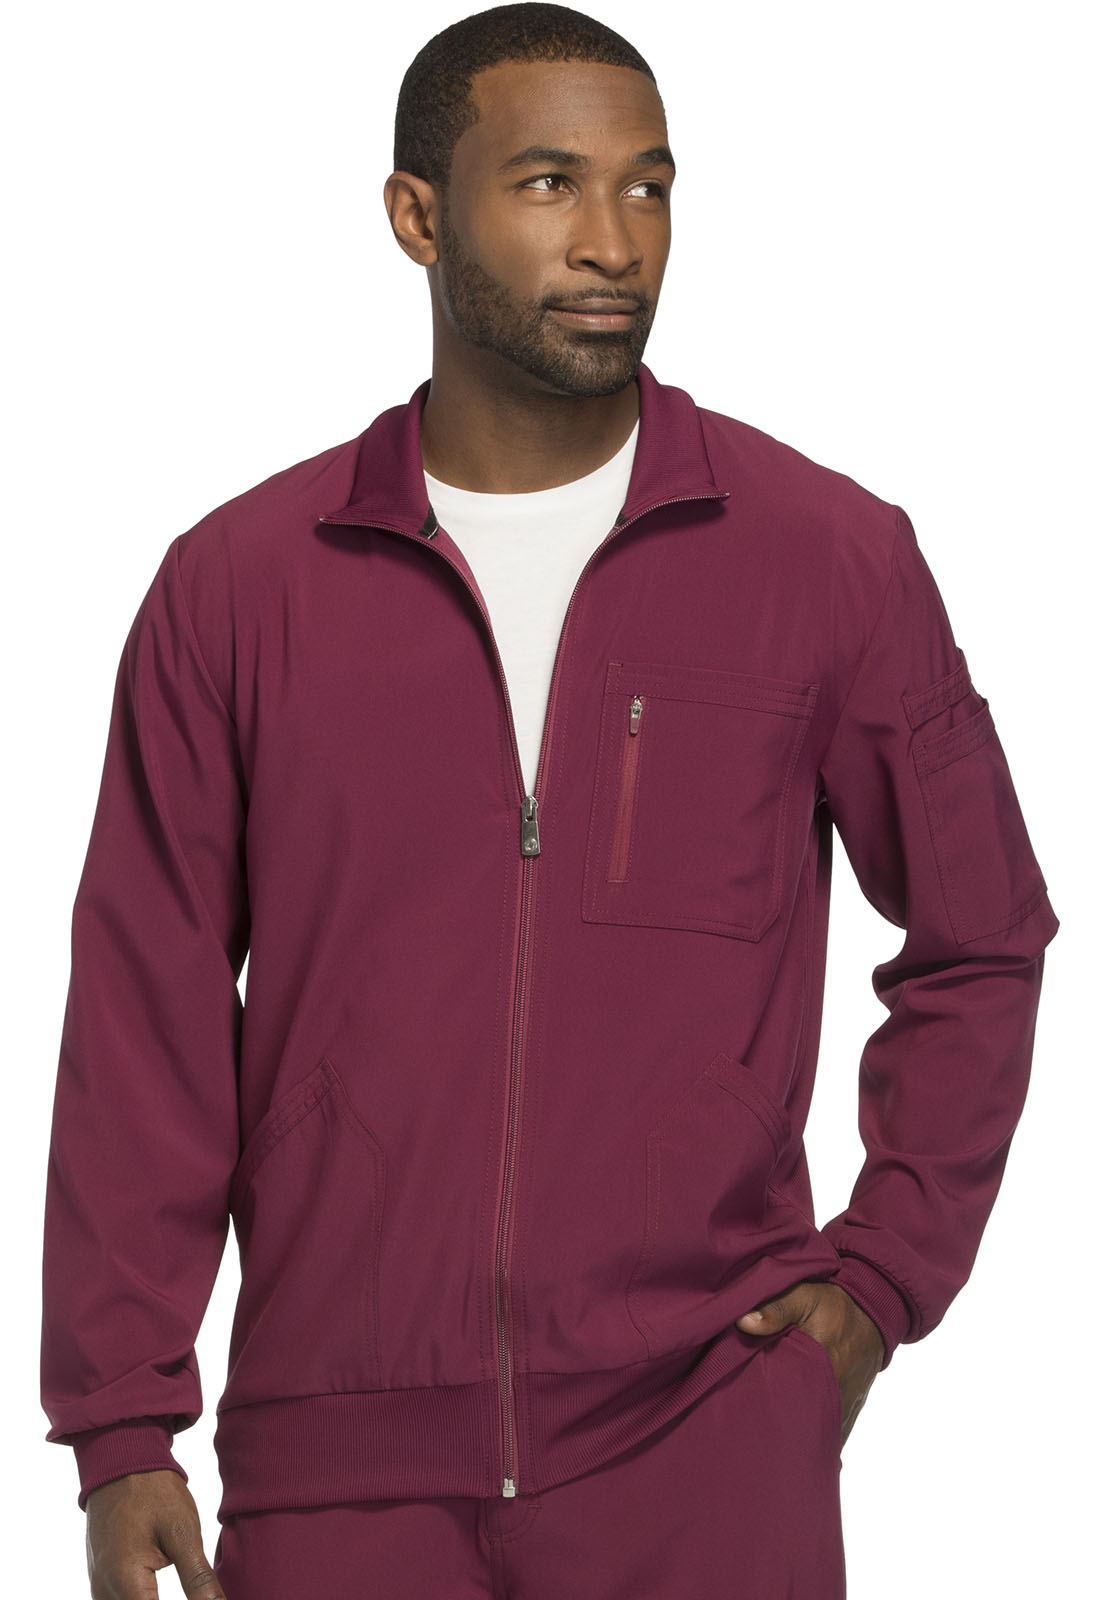 a8408926625 Infinity Men's Zip Front Jacket in Wine CK305A-WNPS from The Nurses ...